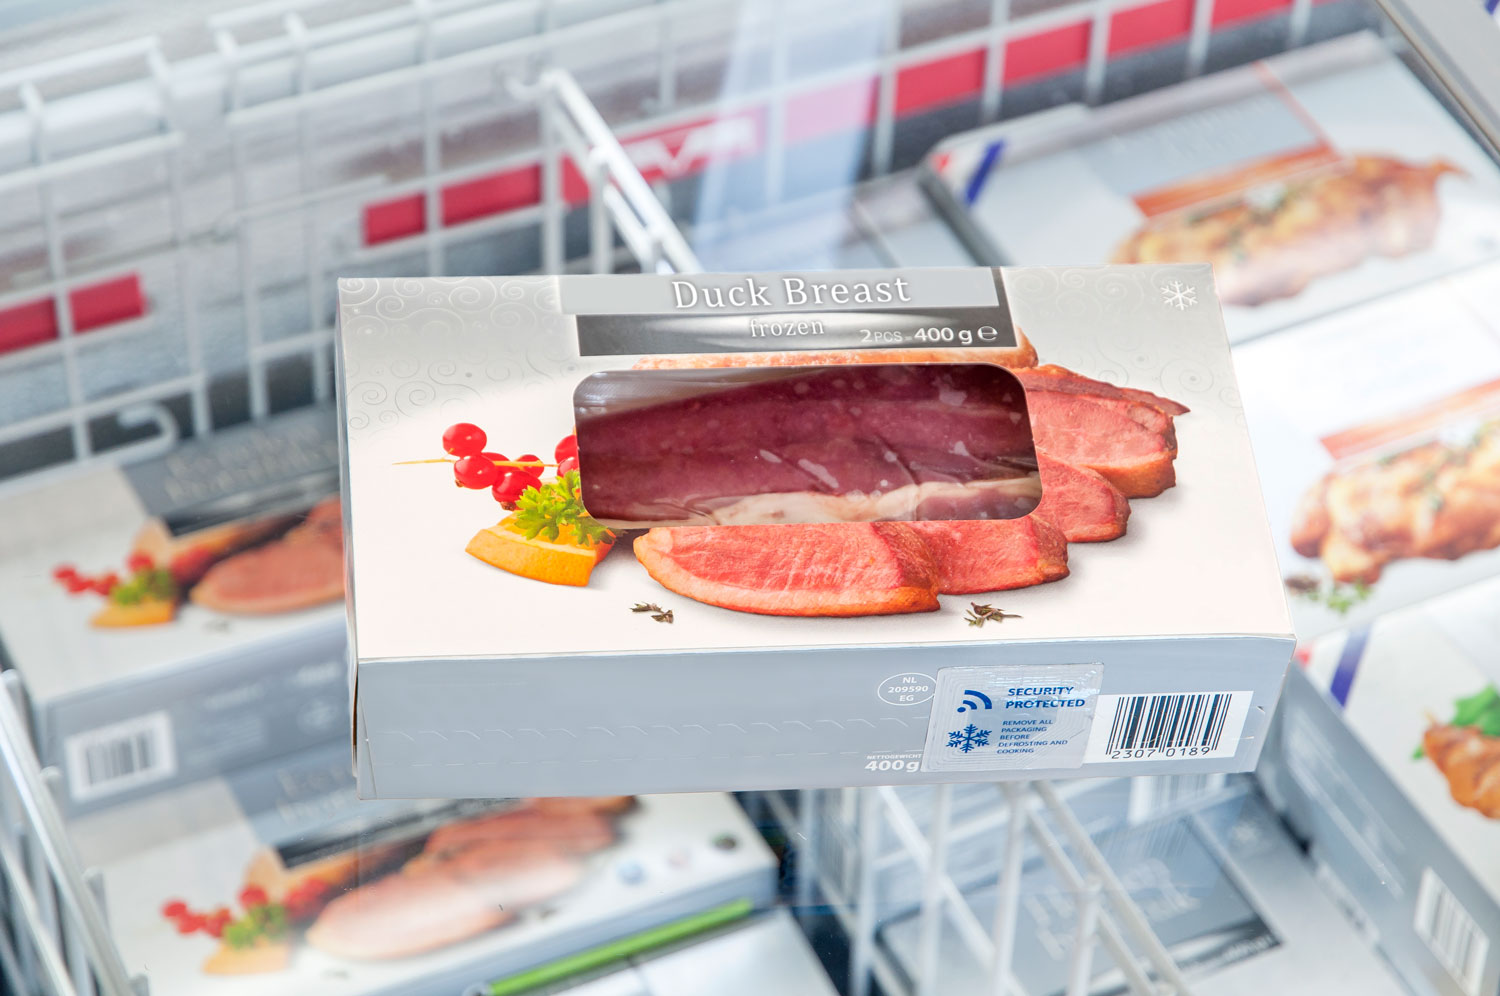 Whitepaper - How to secure chilled and frozen meat products